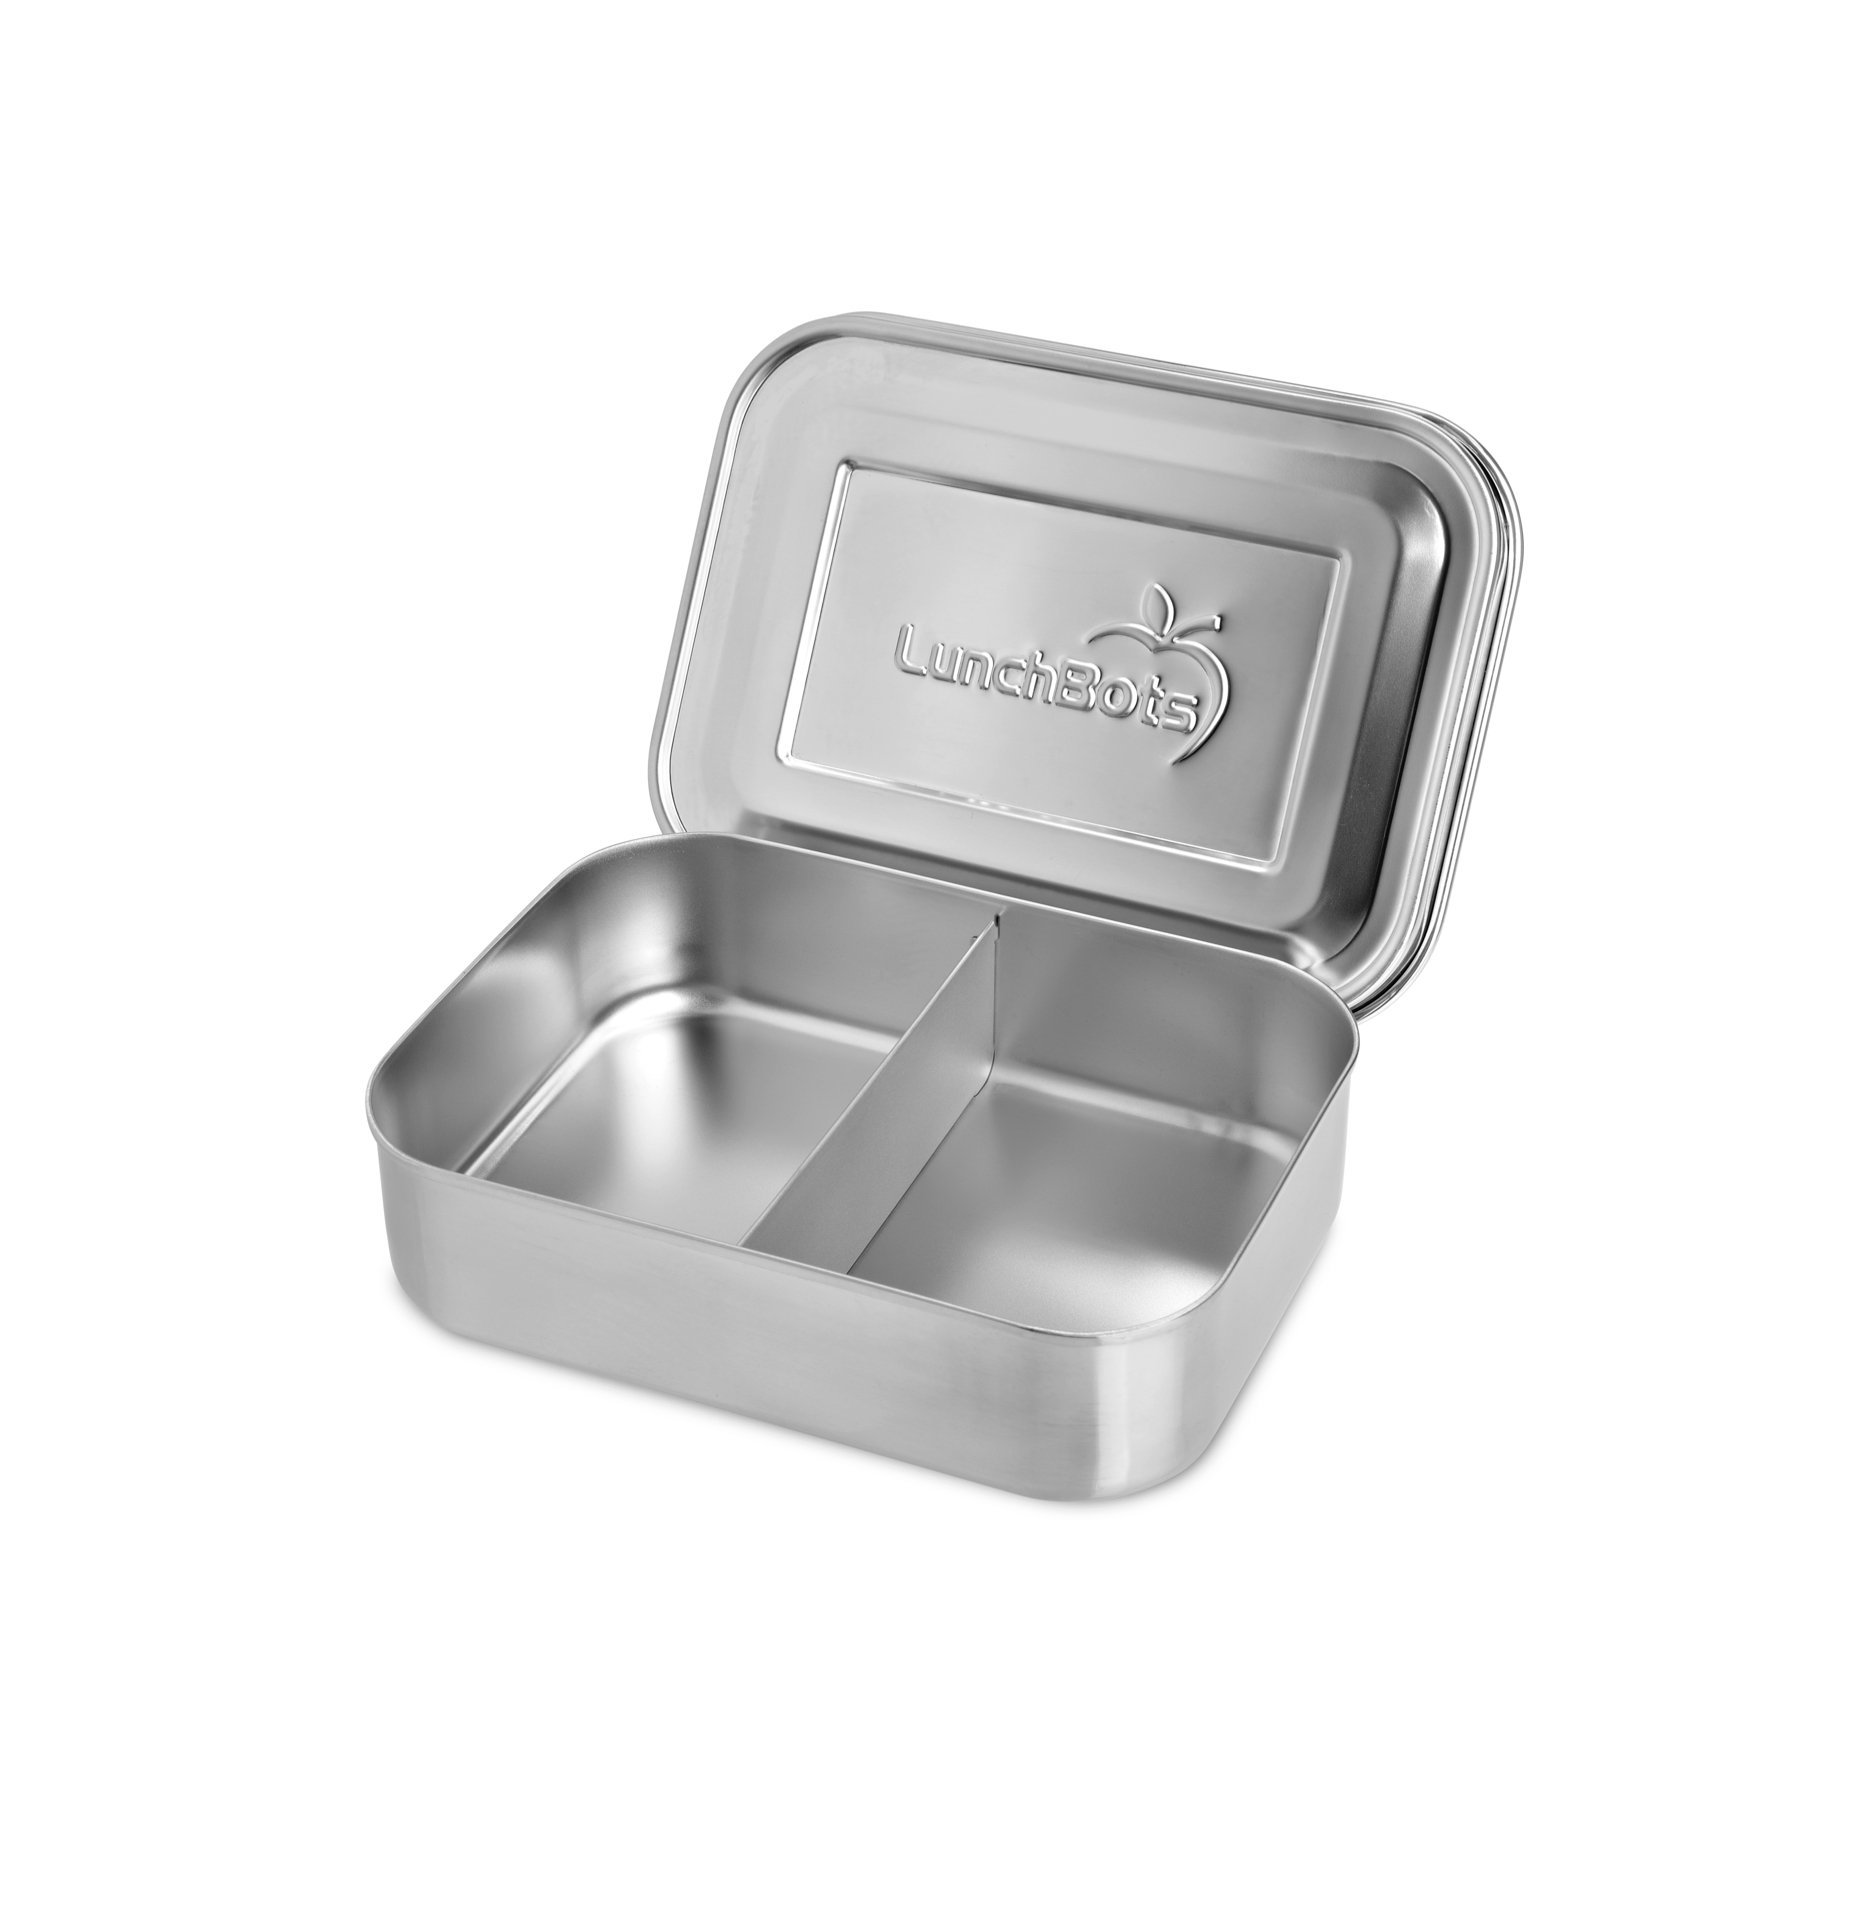 LunchBots Small Pico Duo Stainless Steel Snack Container - Mini Food Container with 2 Compartments for Fruits, Vegetables and Finger Foods - Eco-Friendly, Dishwasher Safe and Durable by LunchBots